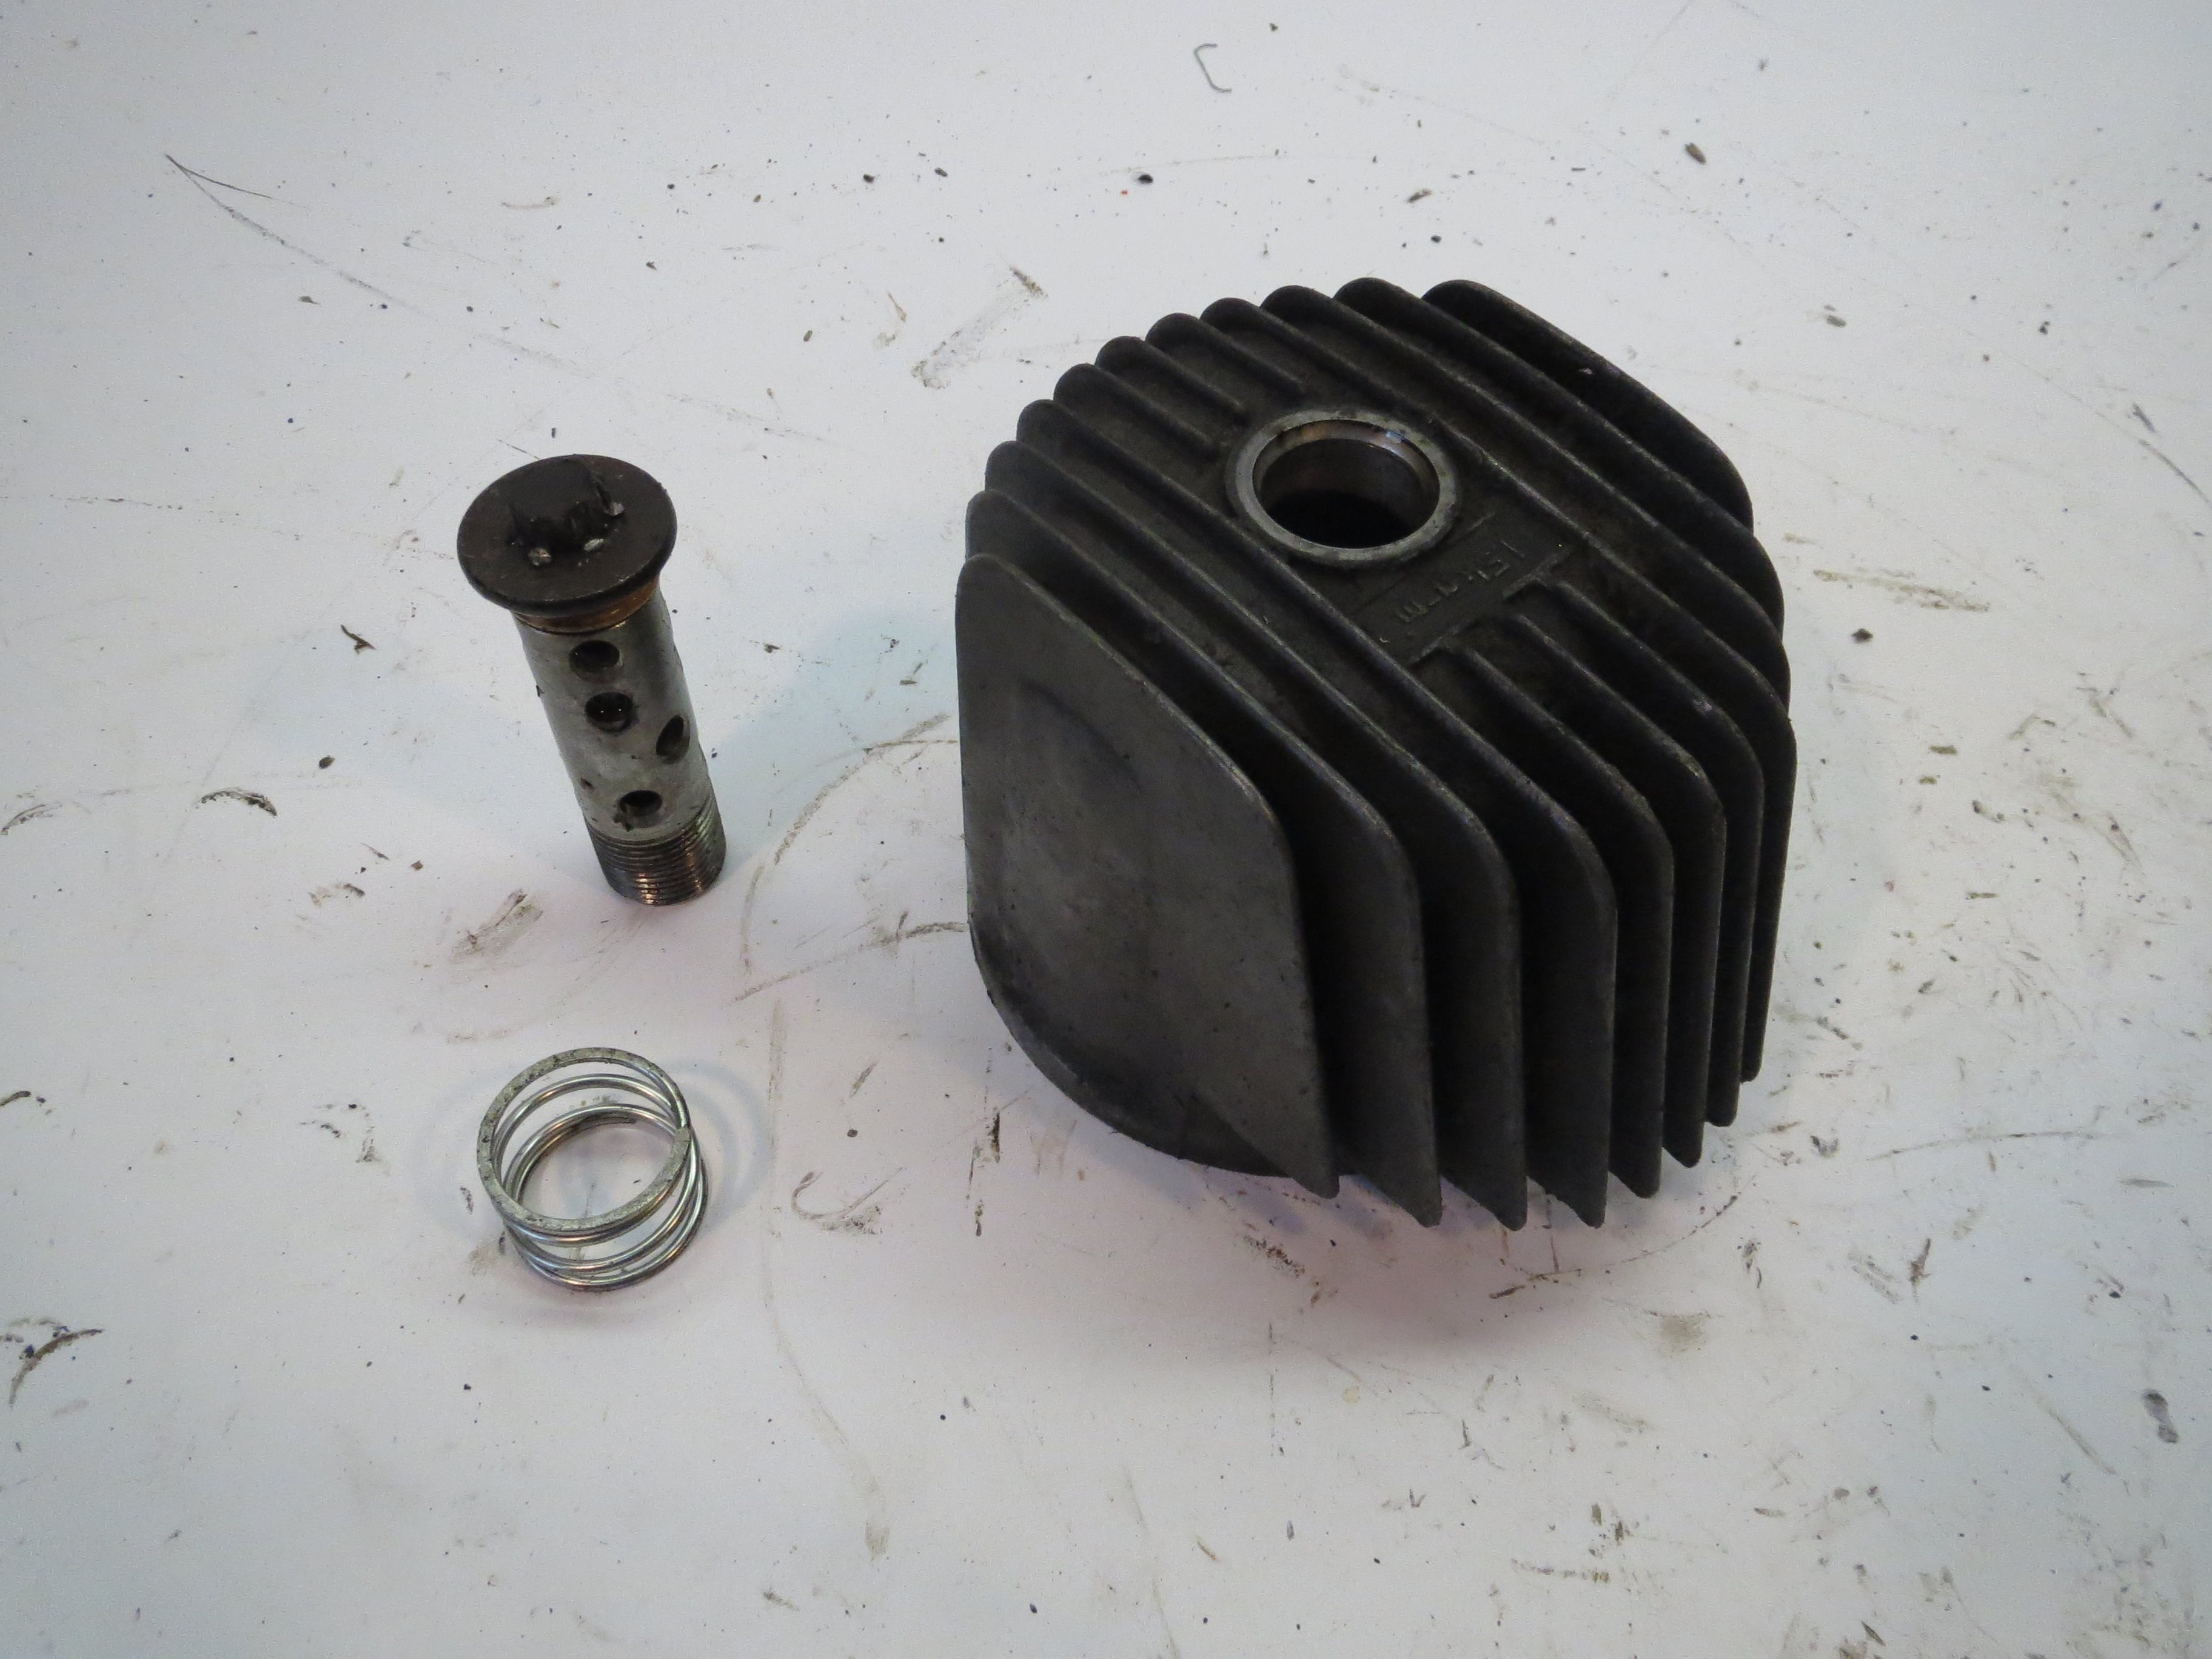 Yamaha XJ550 Oil Filter Cover 81 - 83